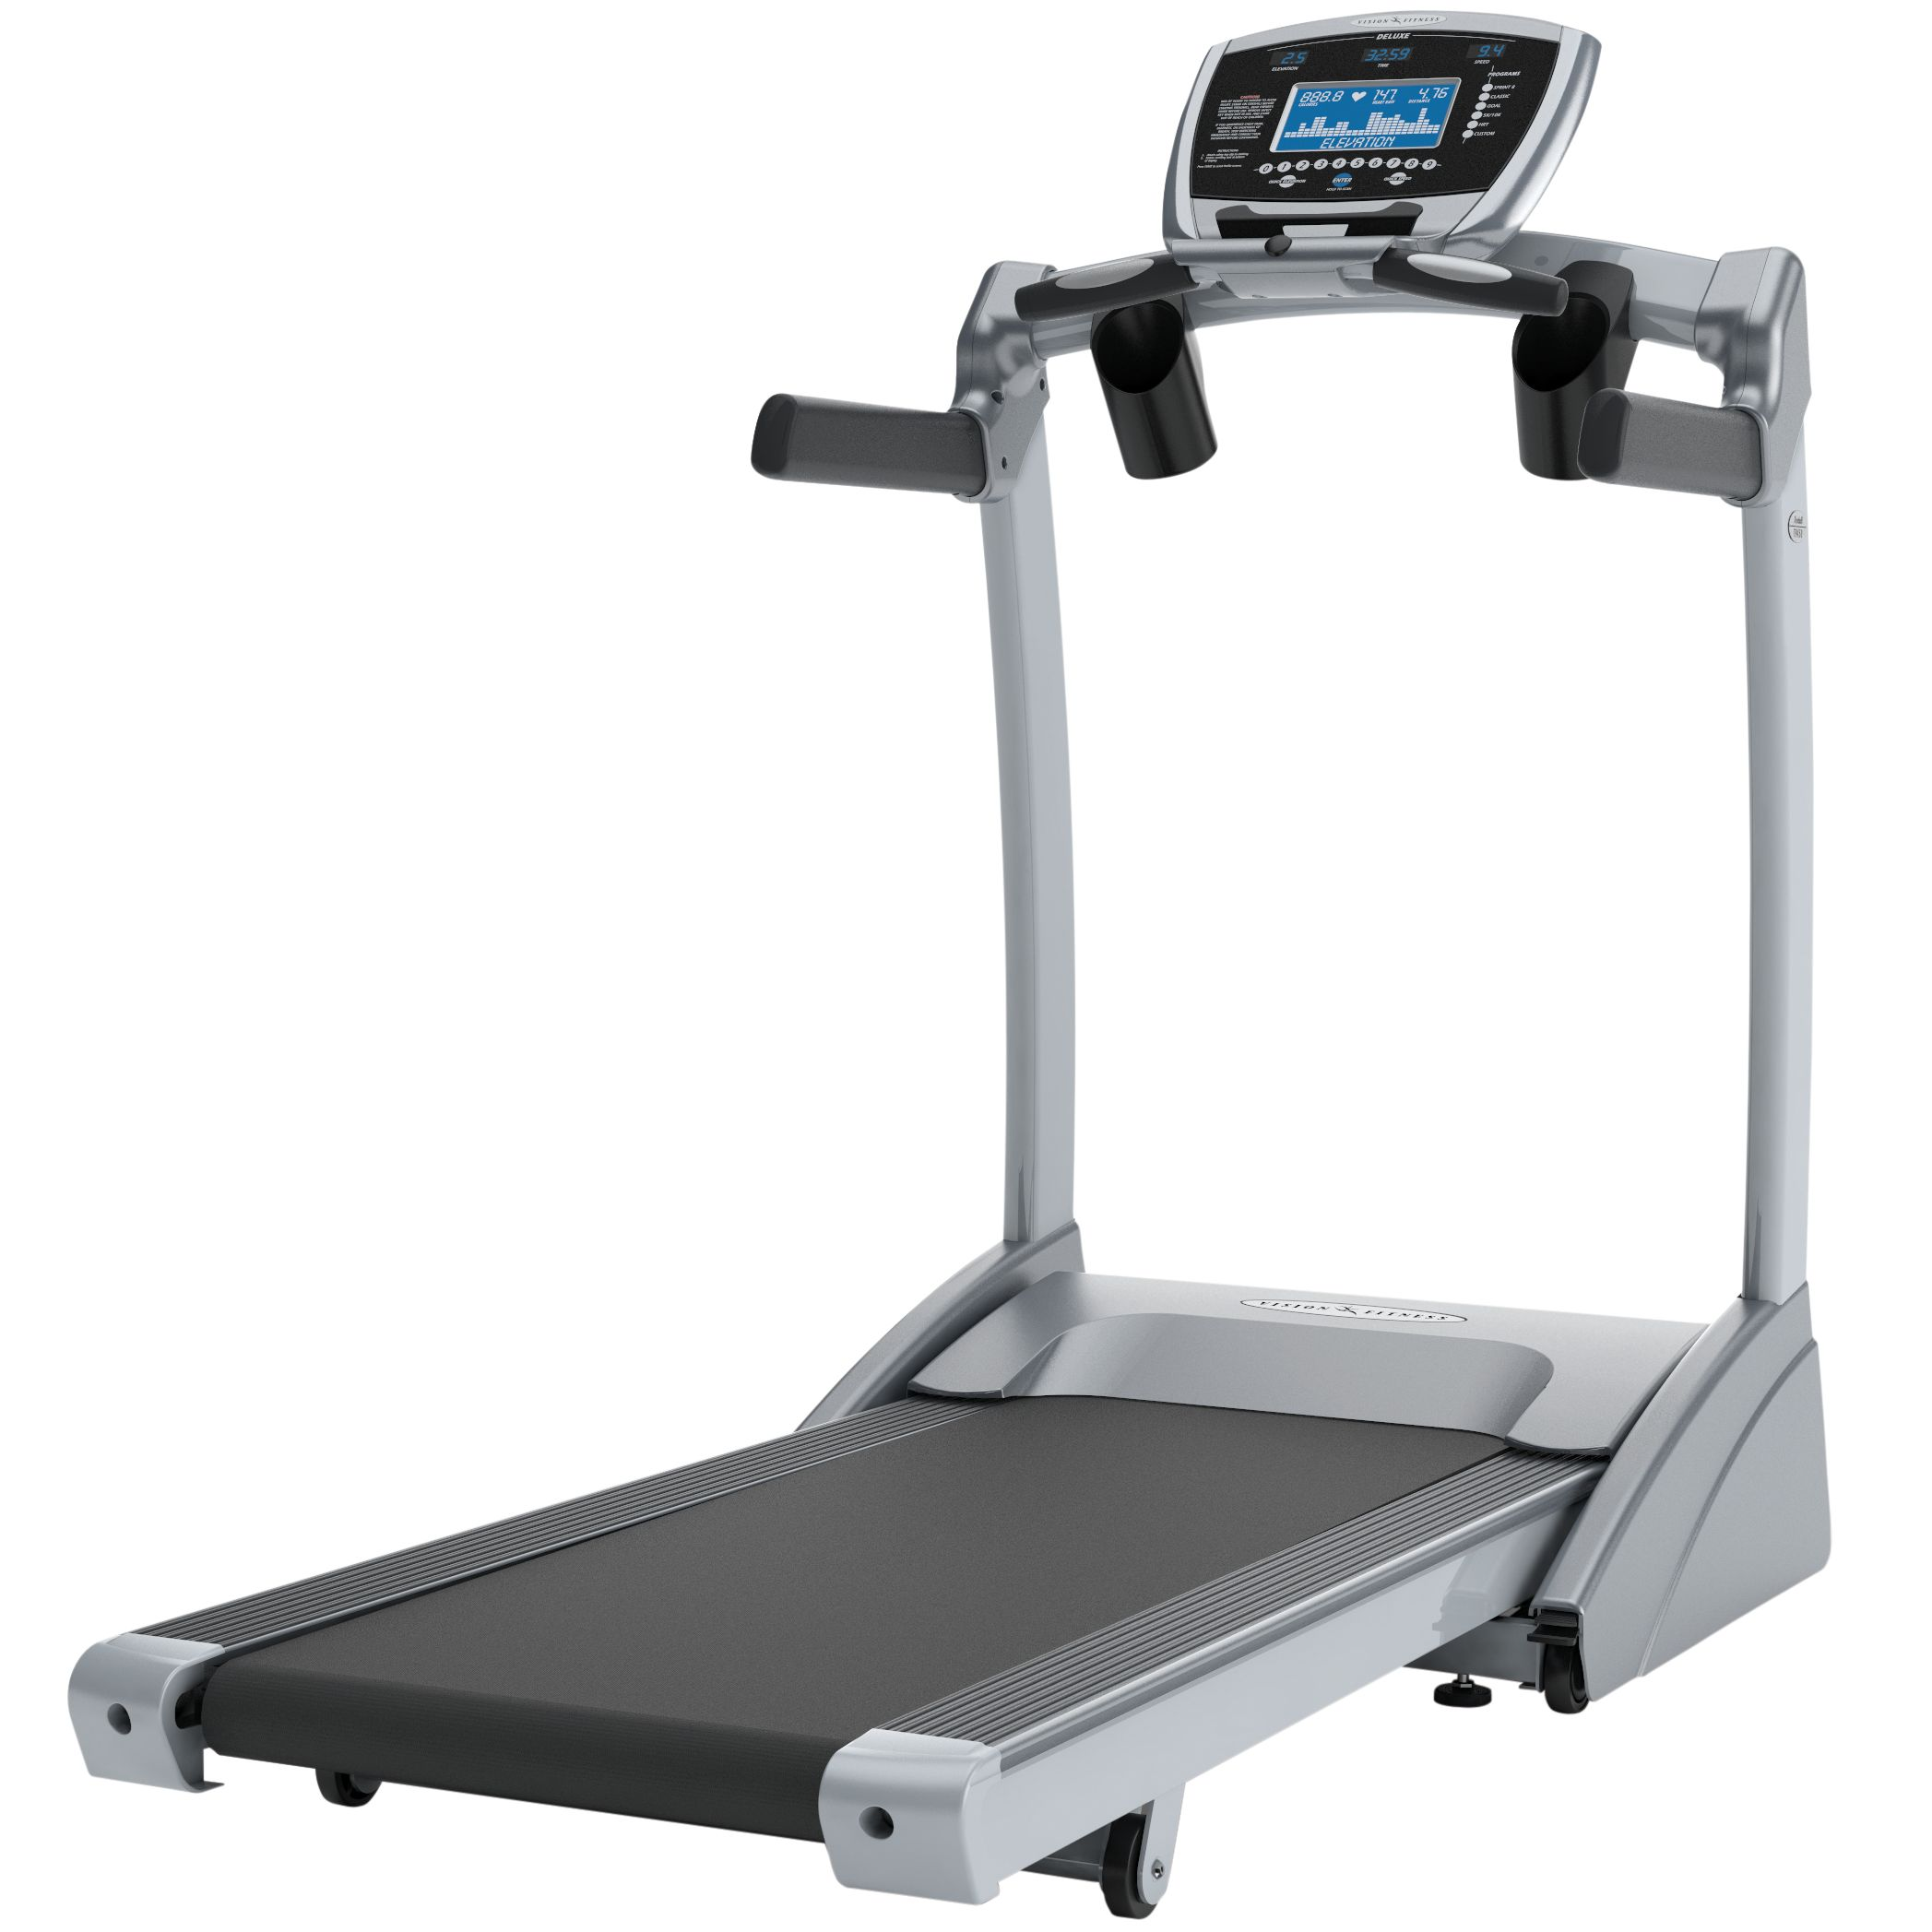 T9250 Folding Treadmill with